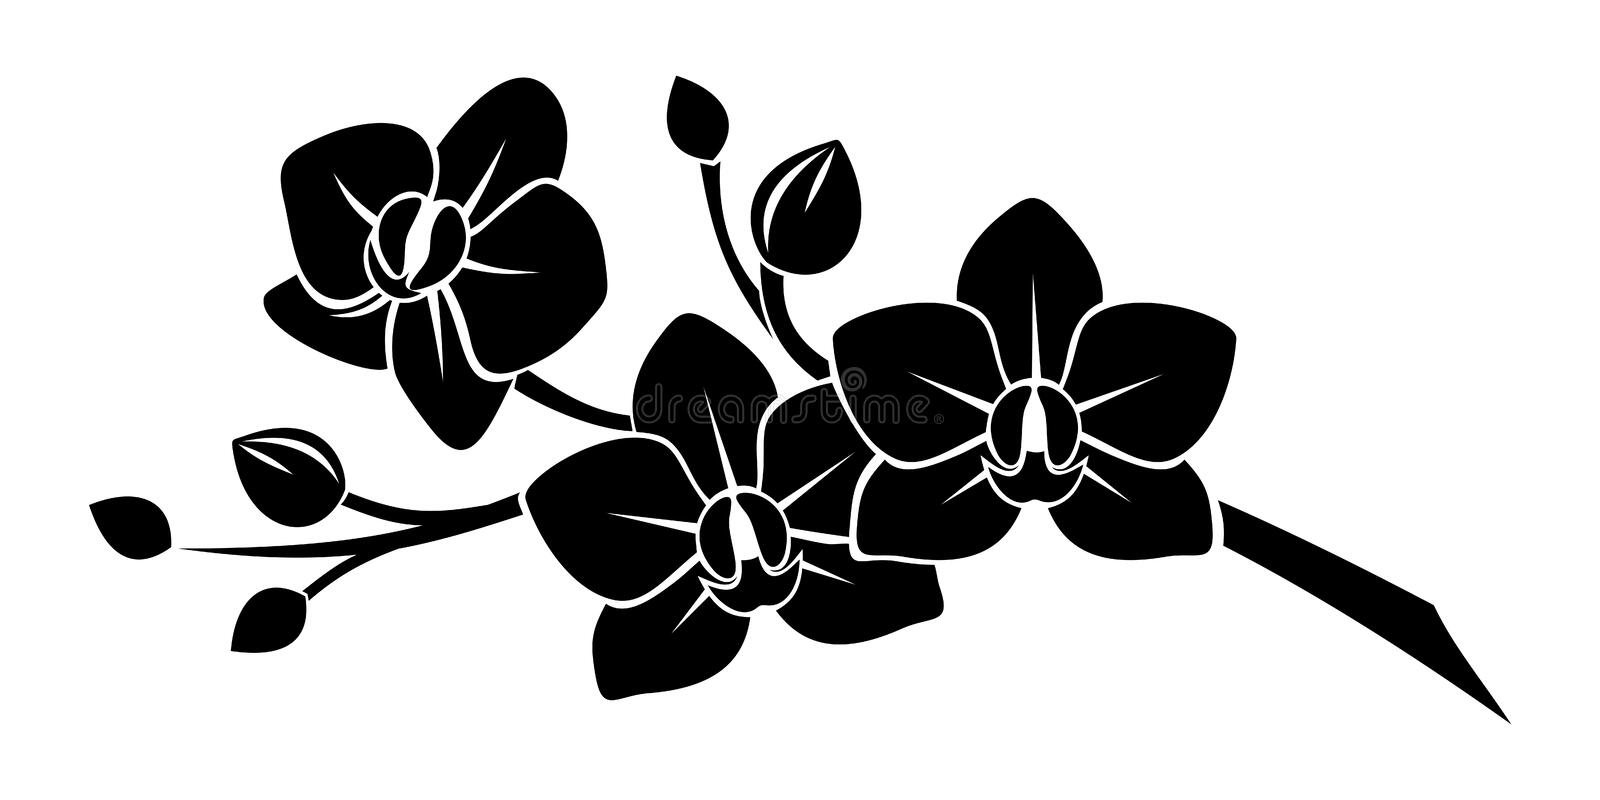 Black silhouette of orchid flowers. Black silhouette of branch with orchid flowers on a white background